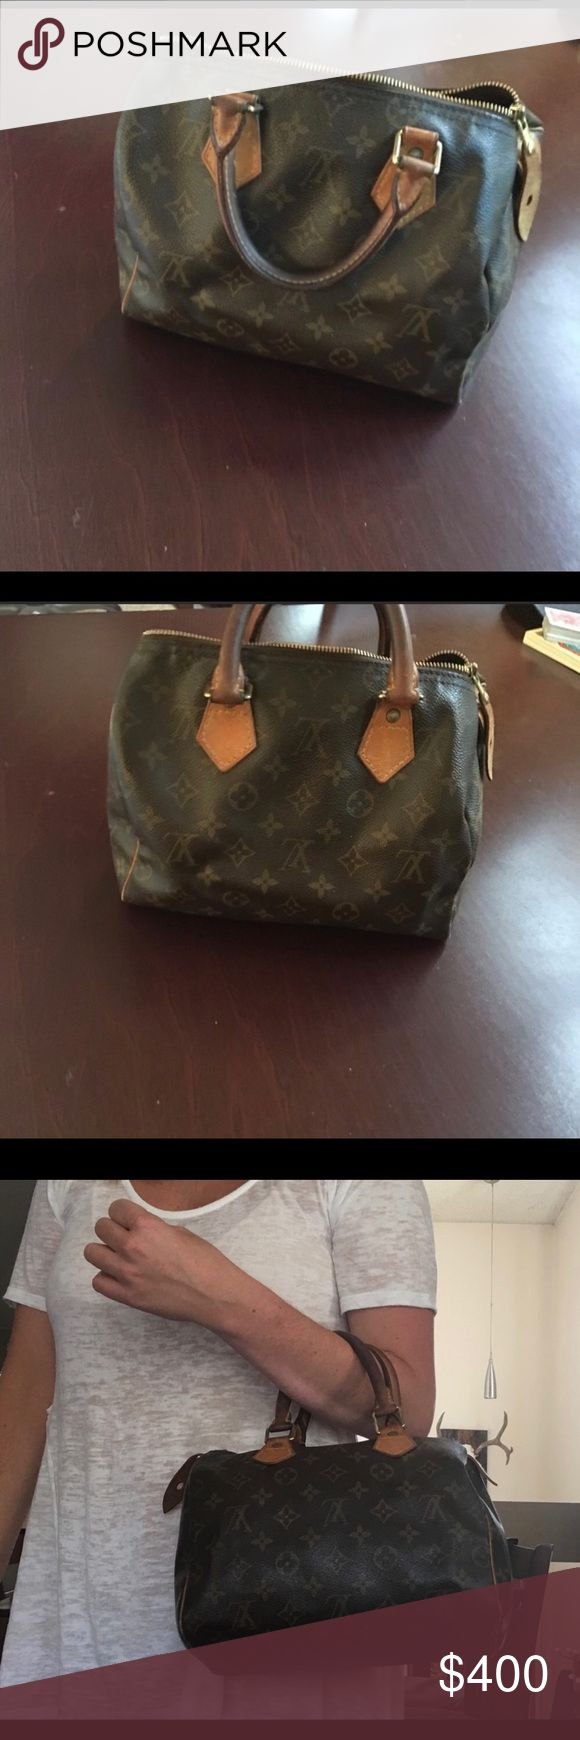 WANT TO SELL ASAP!! Louis Vuitton Speedy 25 tote This second hand REAL Louis Vuitton monogrammed canvas bag. An icon of our times, this city bag is ideal for the fast pace of modern life. Wherever you need to go, the Speedy 25 makes zipping around town a pleasure. Louis Vuitton Bags Totes